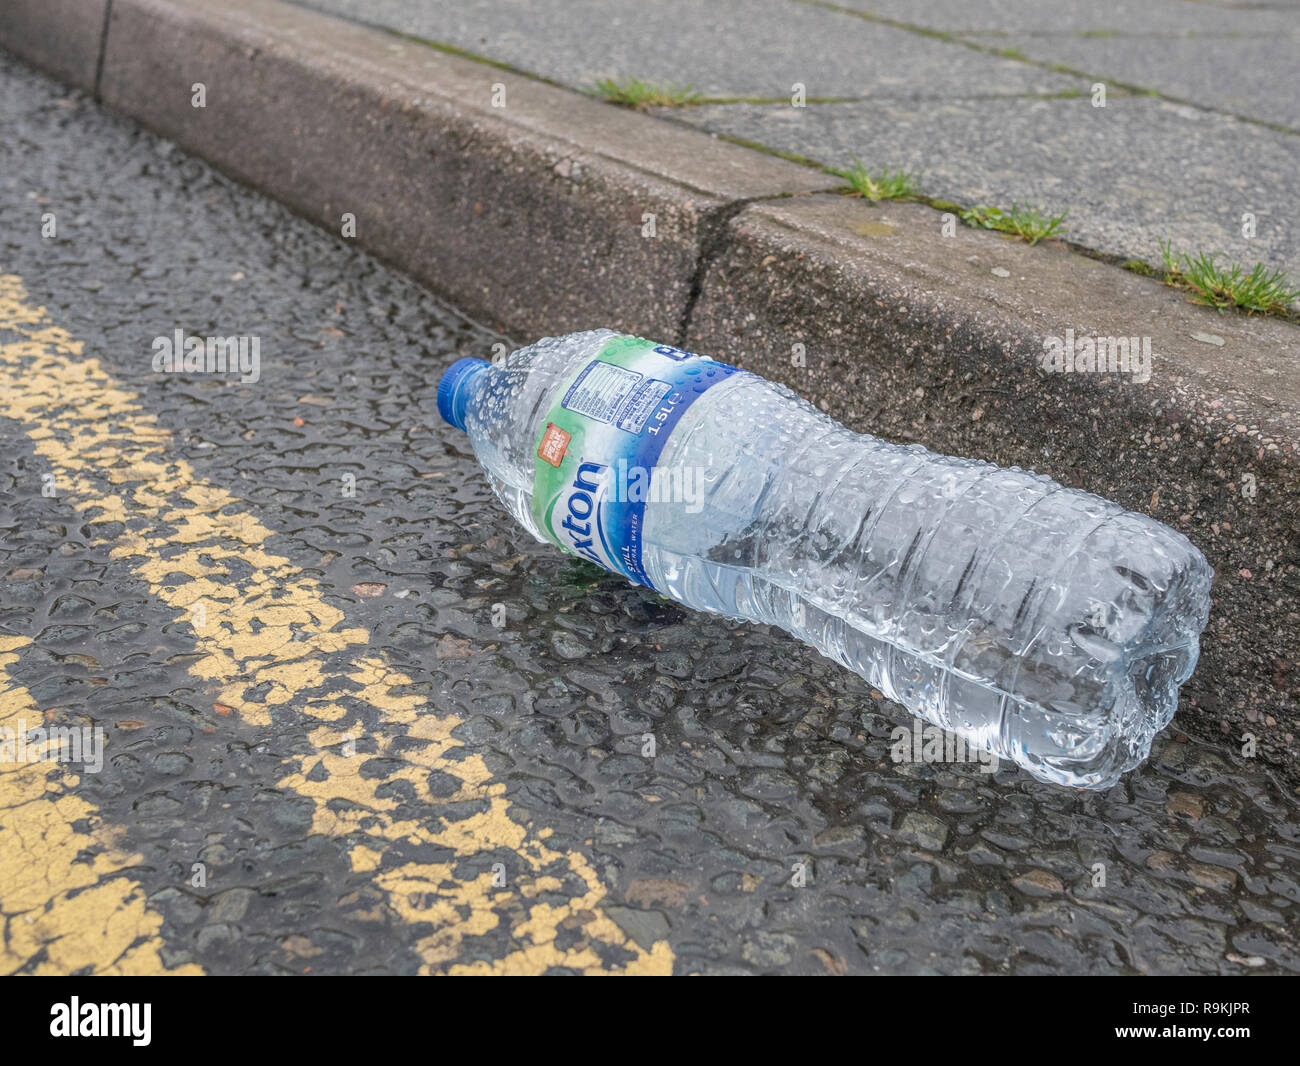 Empty PTFE plastic mineral water bottle discarded in urban road gutter. Metaphor plastic pollution, environmental pollution, war on plastic waste. - Stock Image